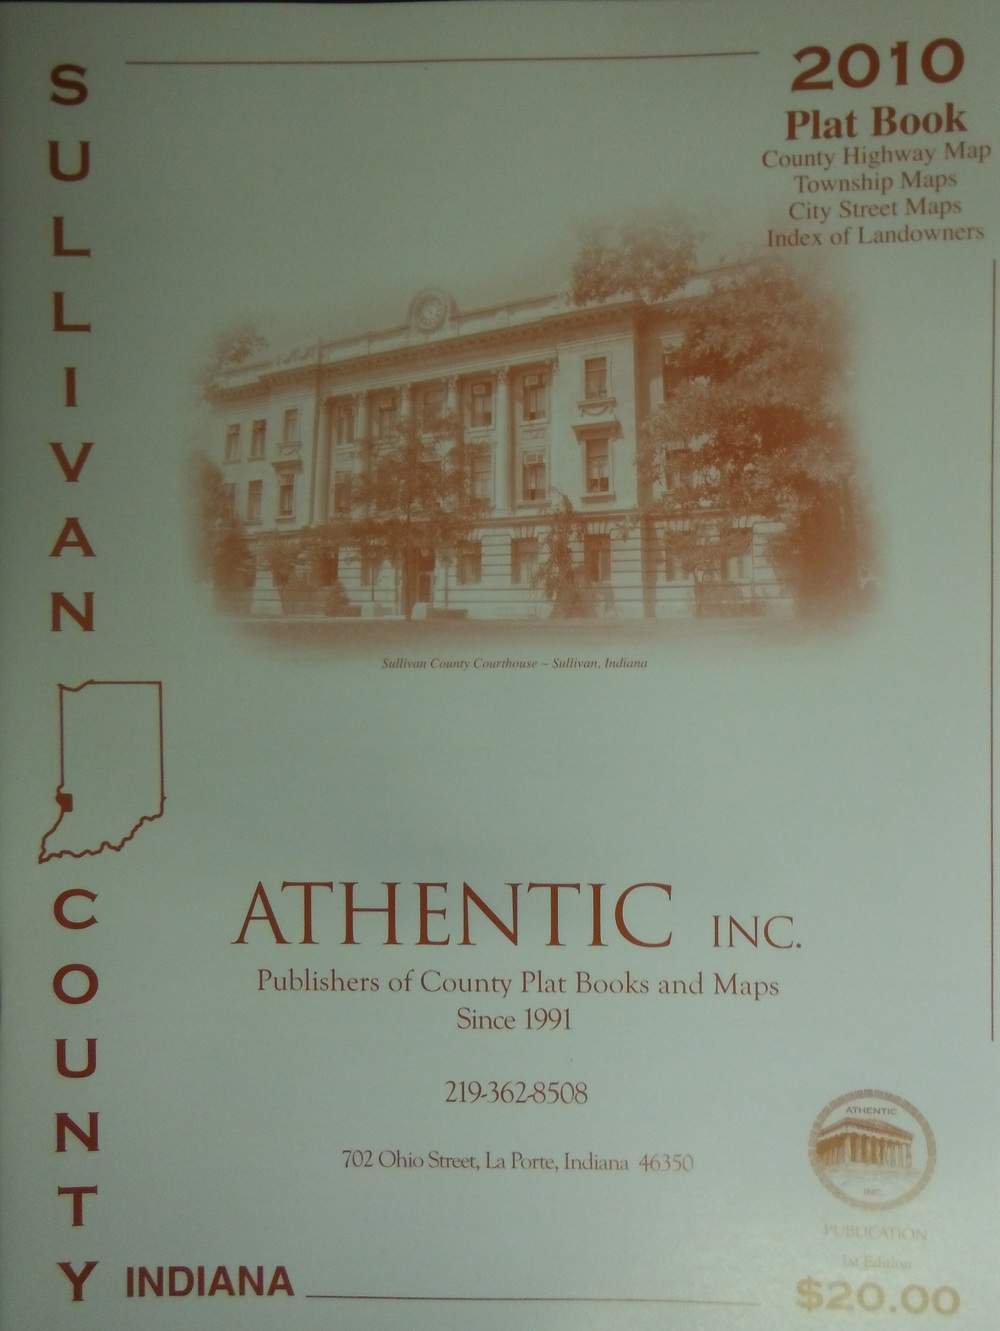 Sullivan County Plat Book $20.00